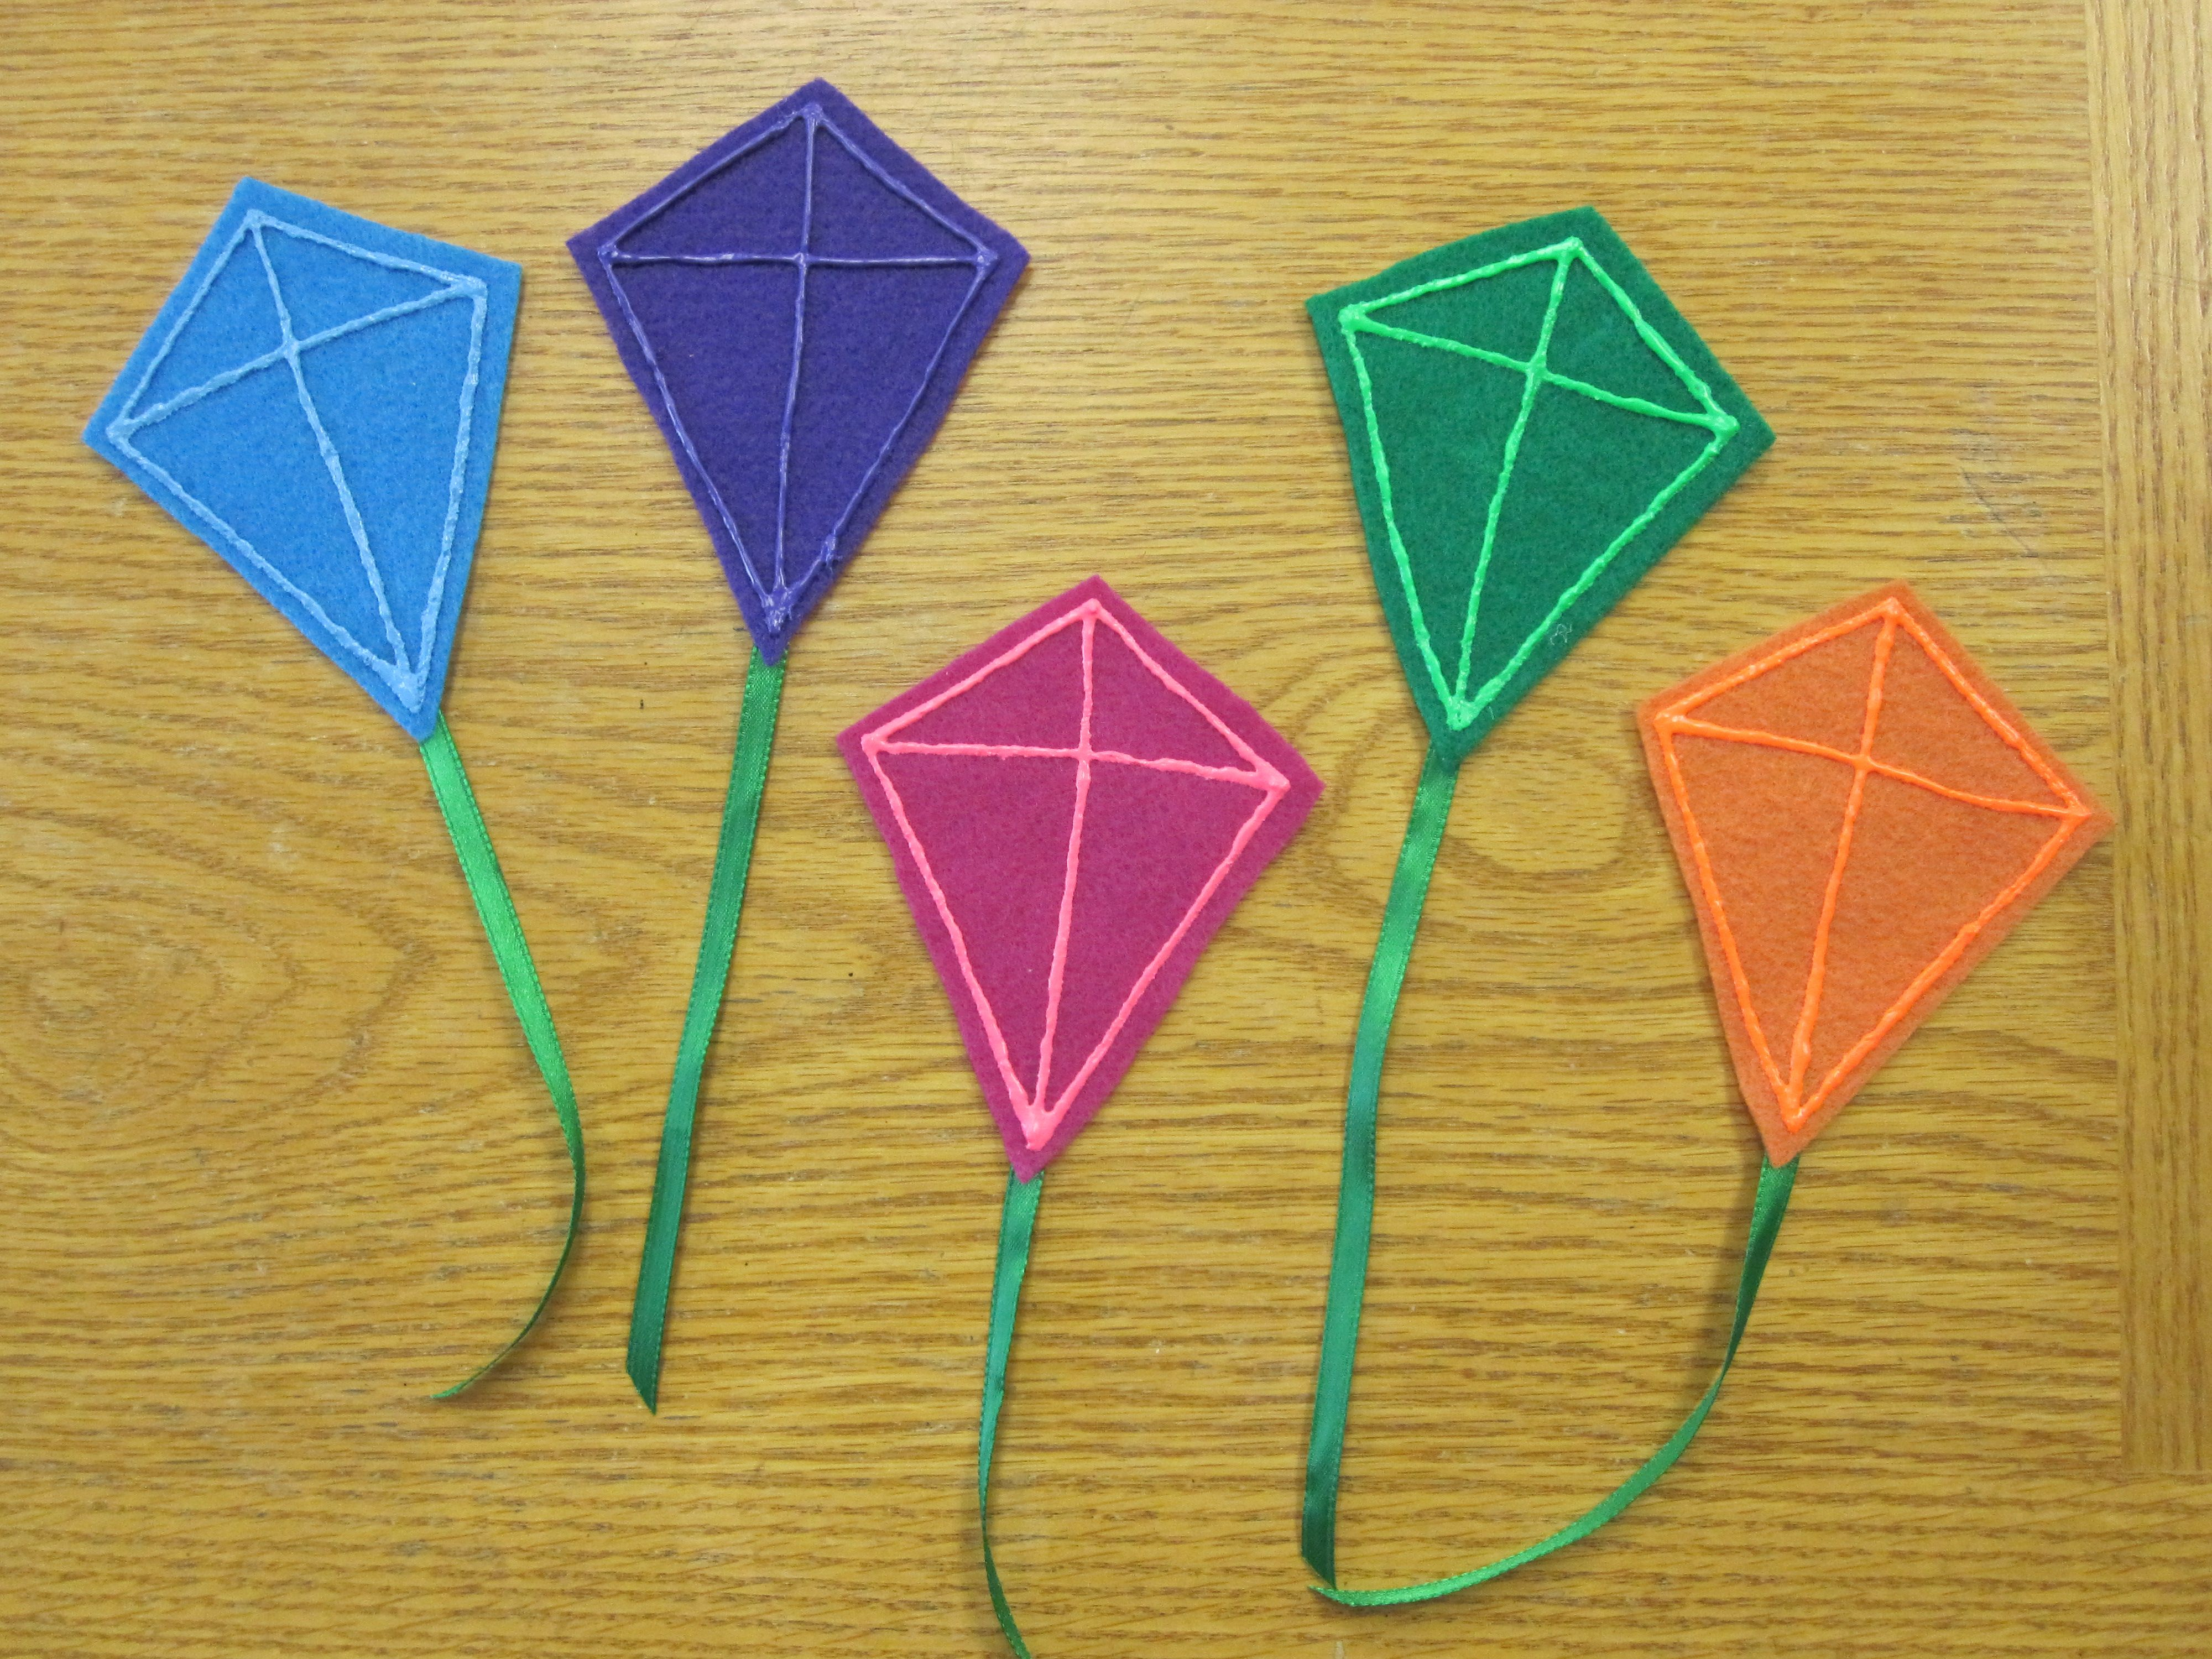 5 Little Kites One Little Kite In The Sky So Blue Along Came Another Then There Were Two Two